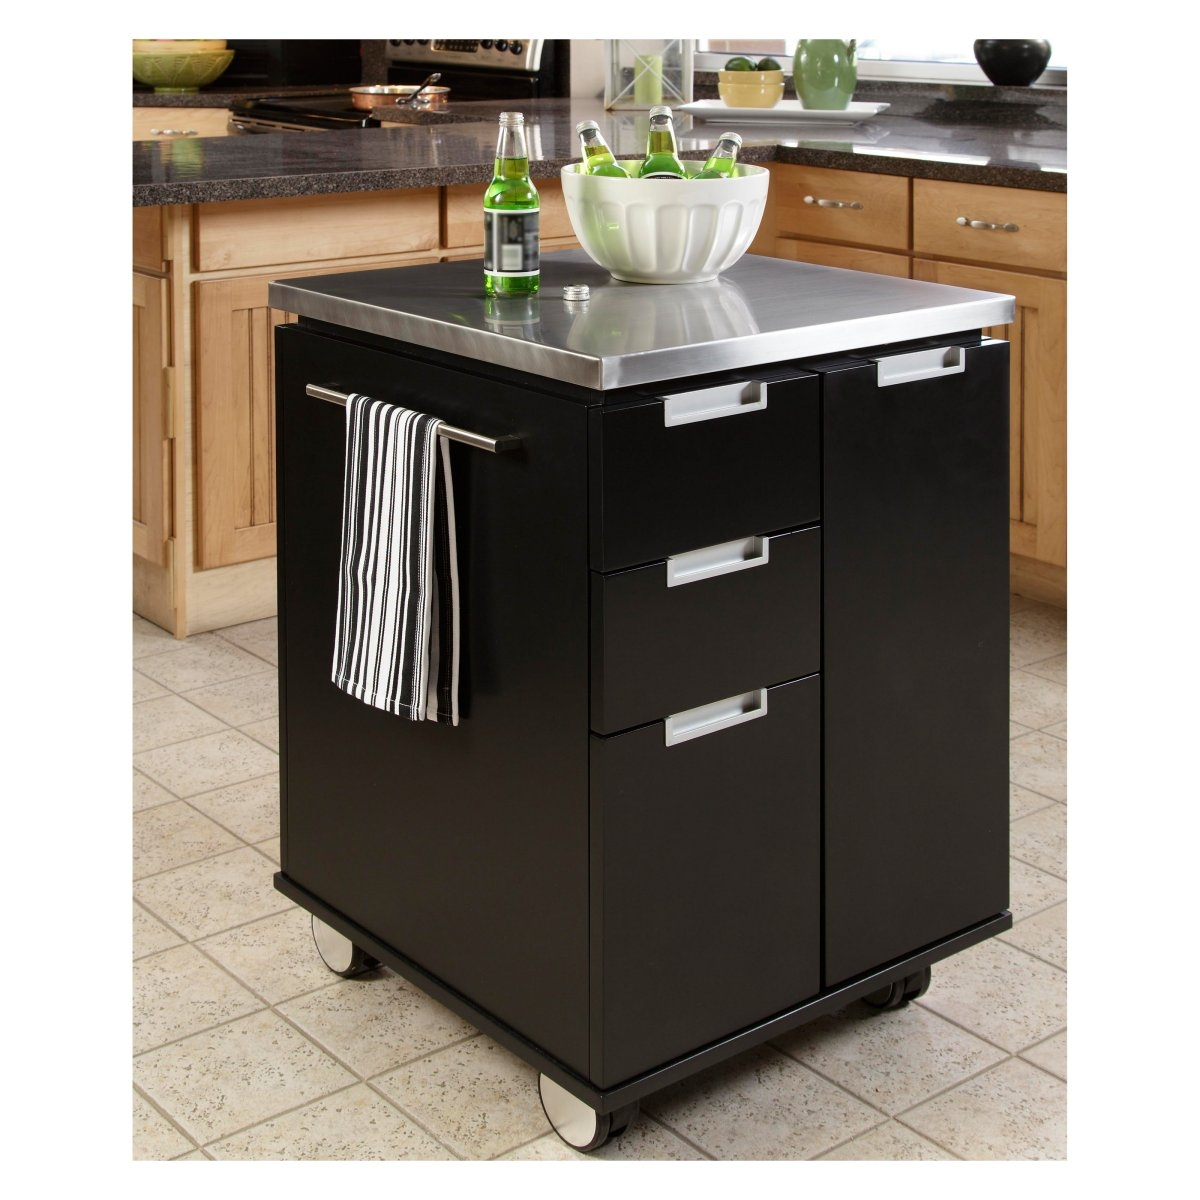 Dolly Madison Kitchen Cabinets